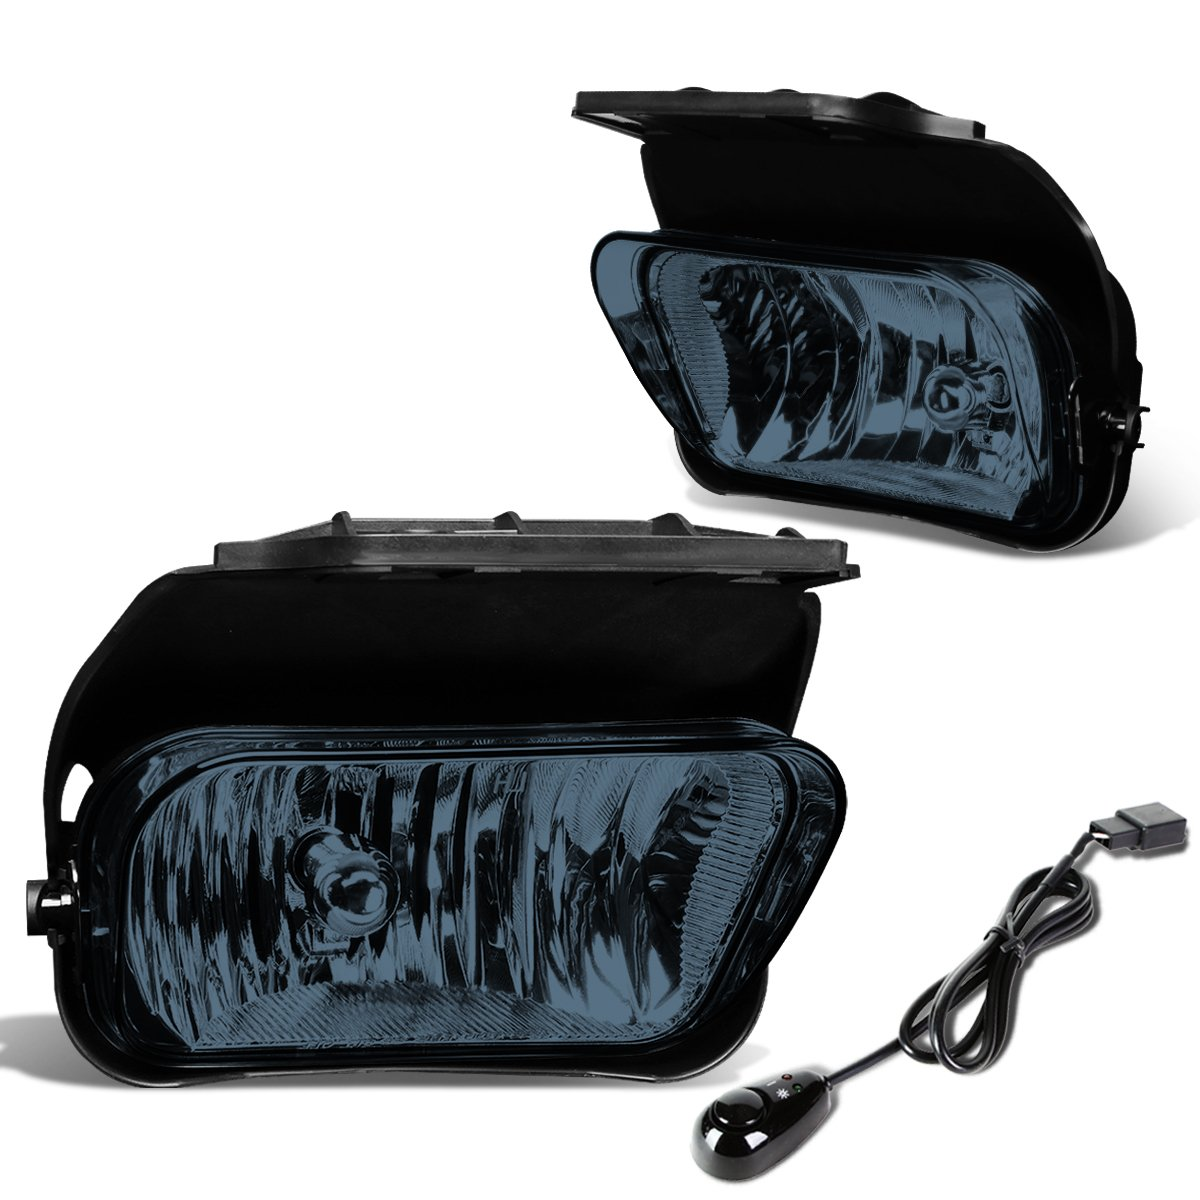 Replacement for Chevy Silverado Pair of Bumper Driving Fog Lights + Wiring Kit + Switch (Smoked Lens)